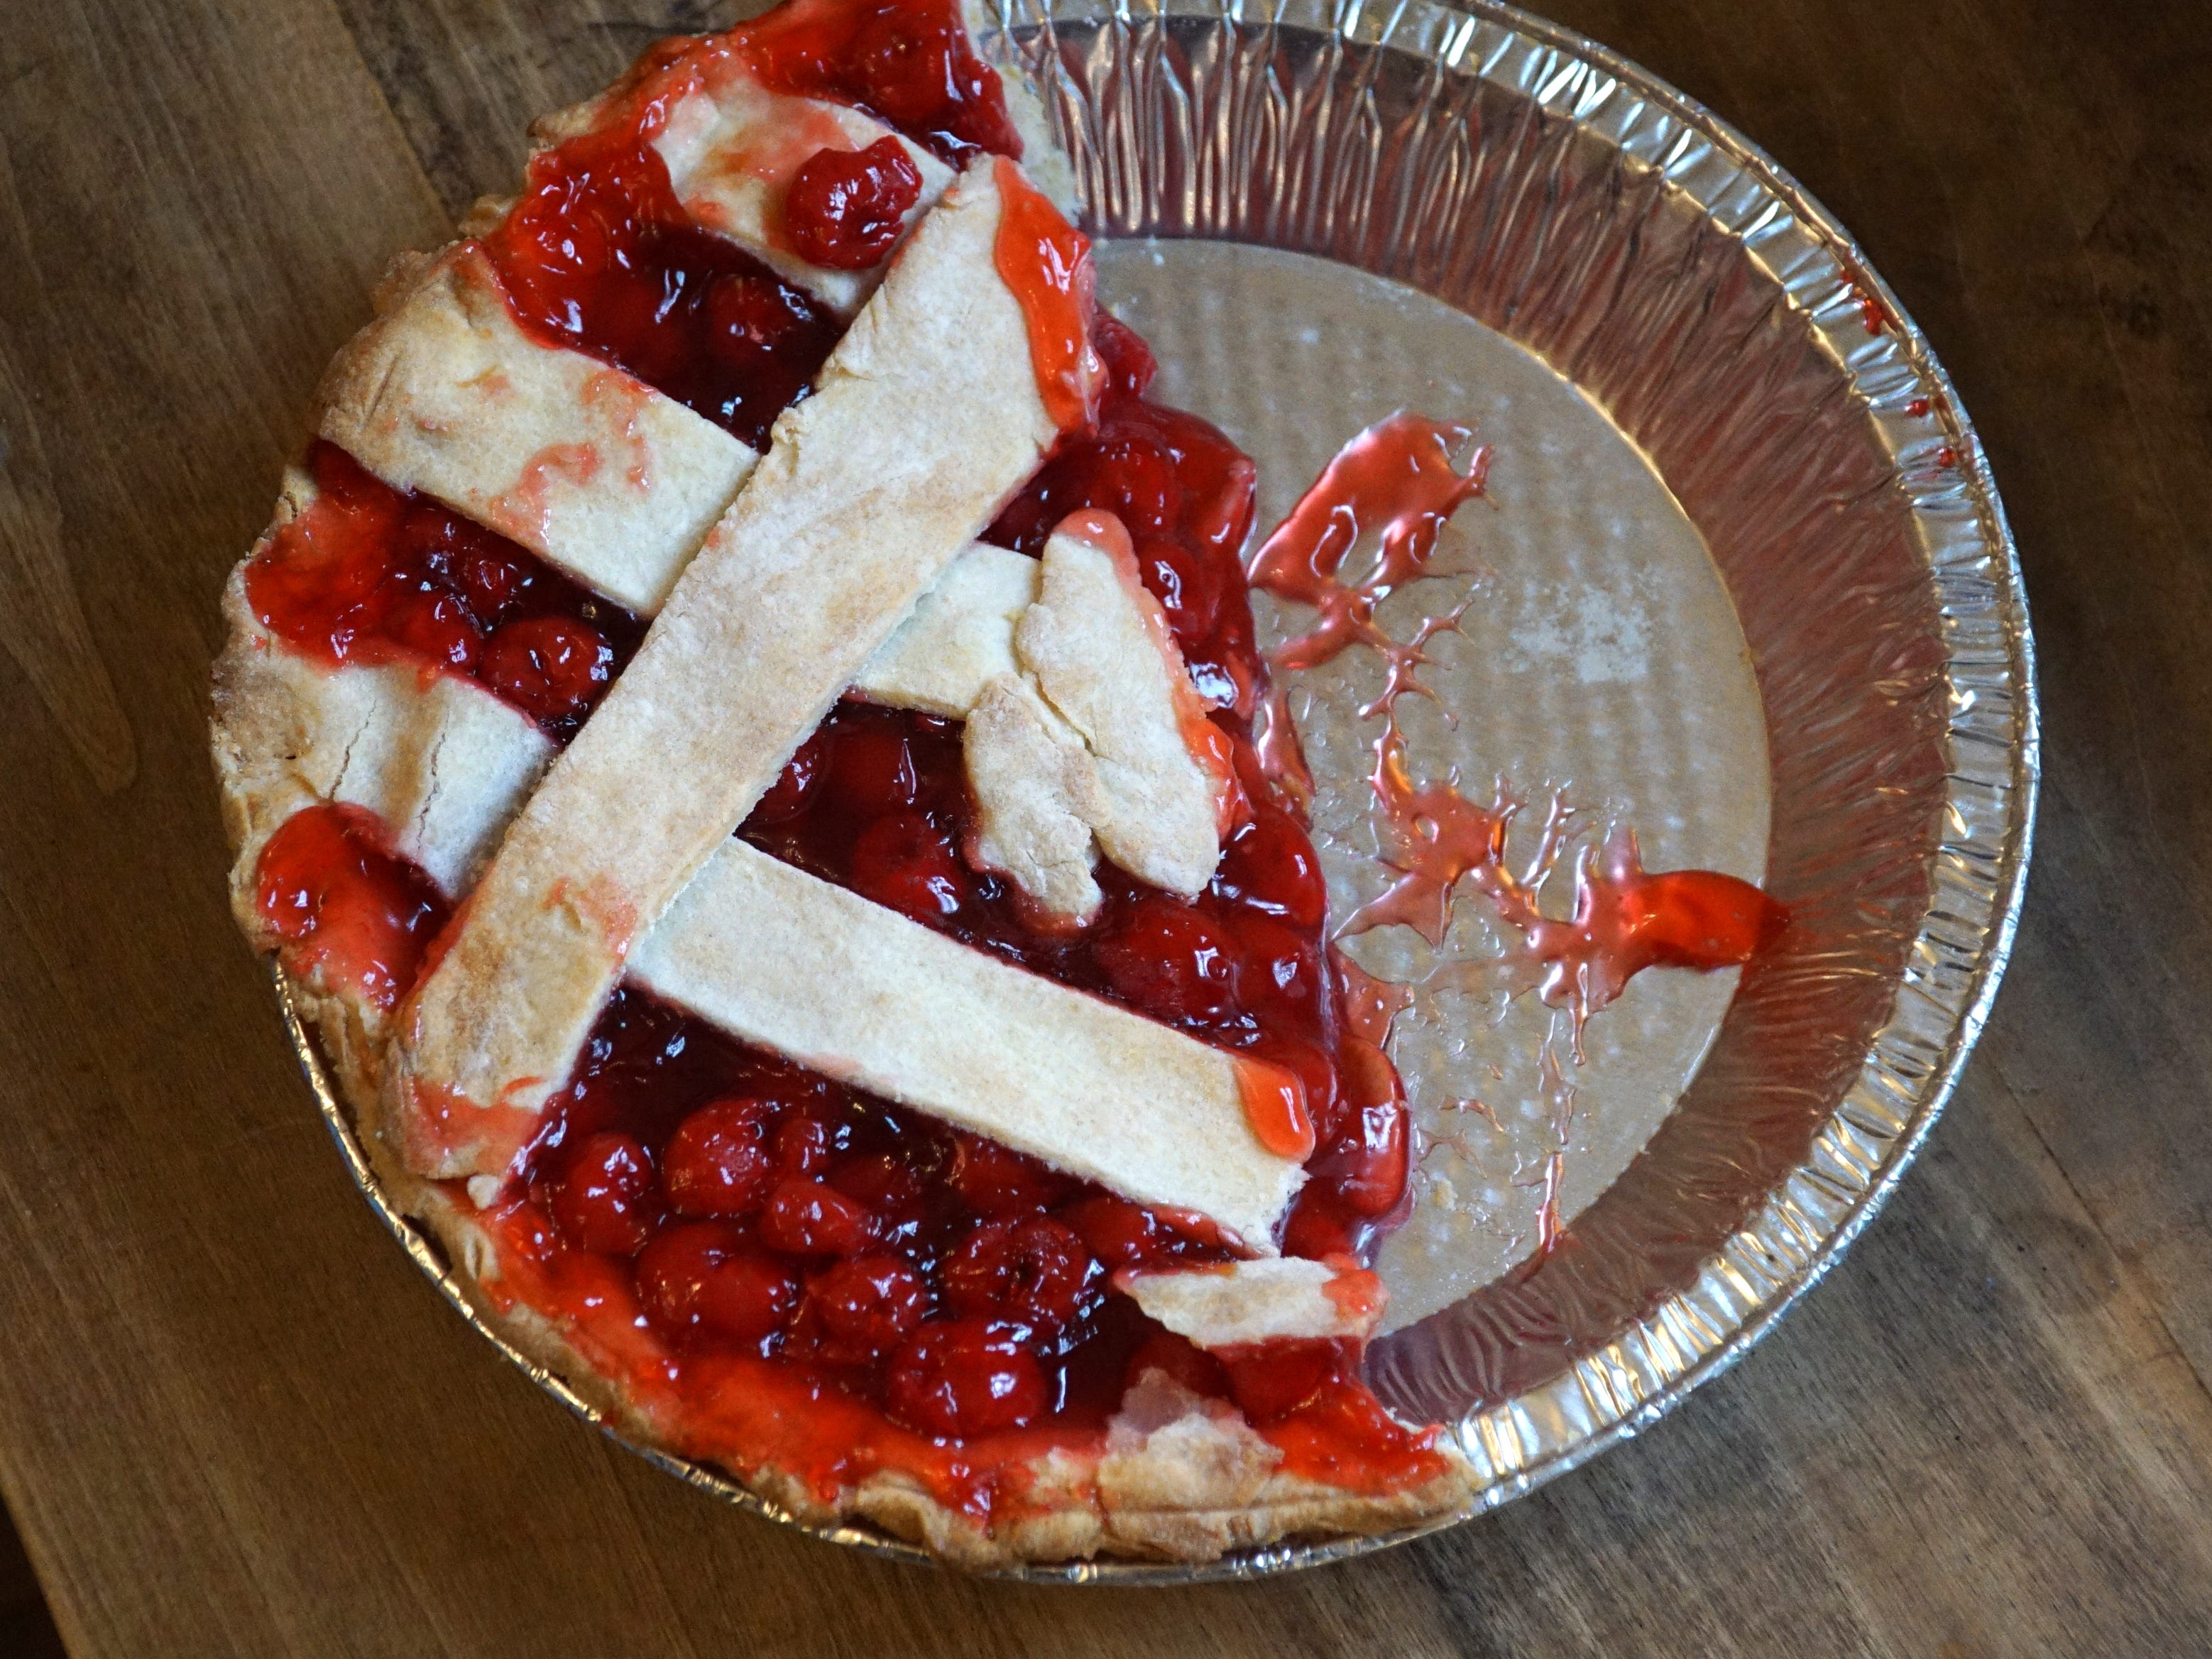 A cherry pie awaits the hungry at Northville's Cady Inn on March 14.